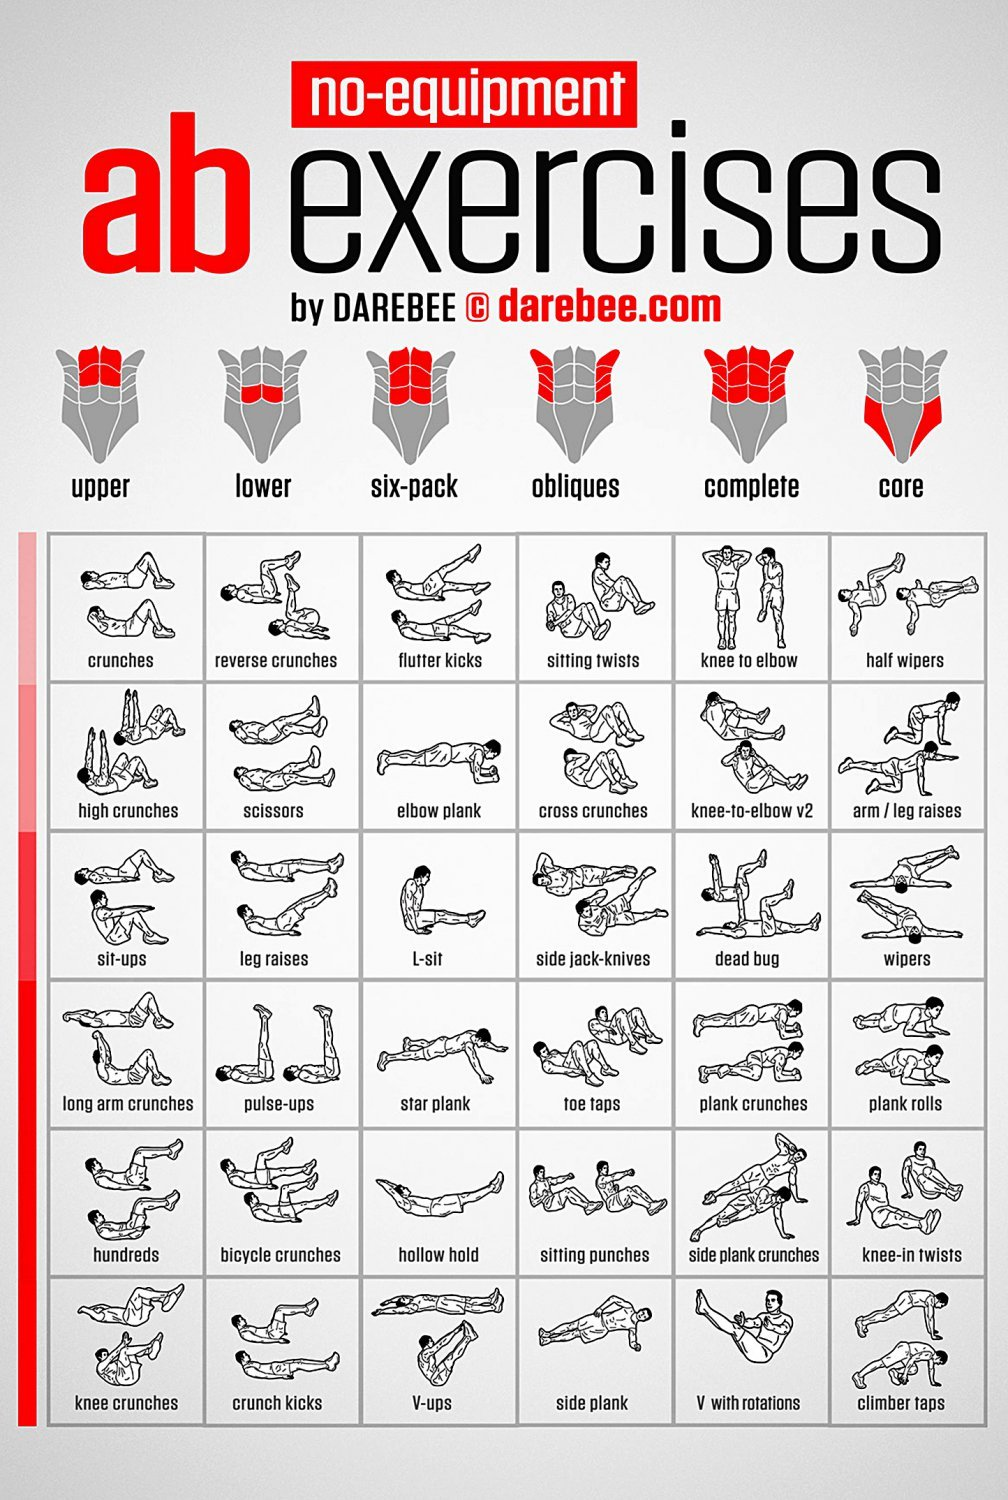 No-equipment Ab Exercises Workout Chart 13x19 inches Poster Print